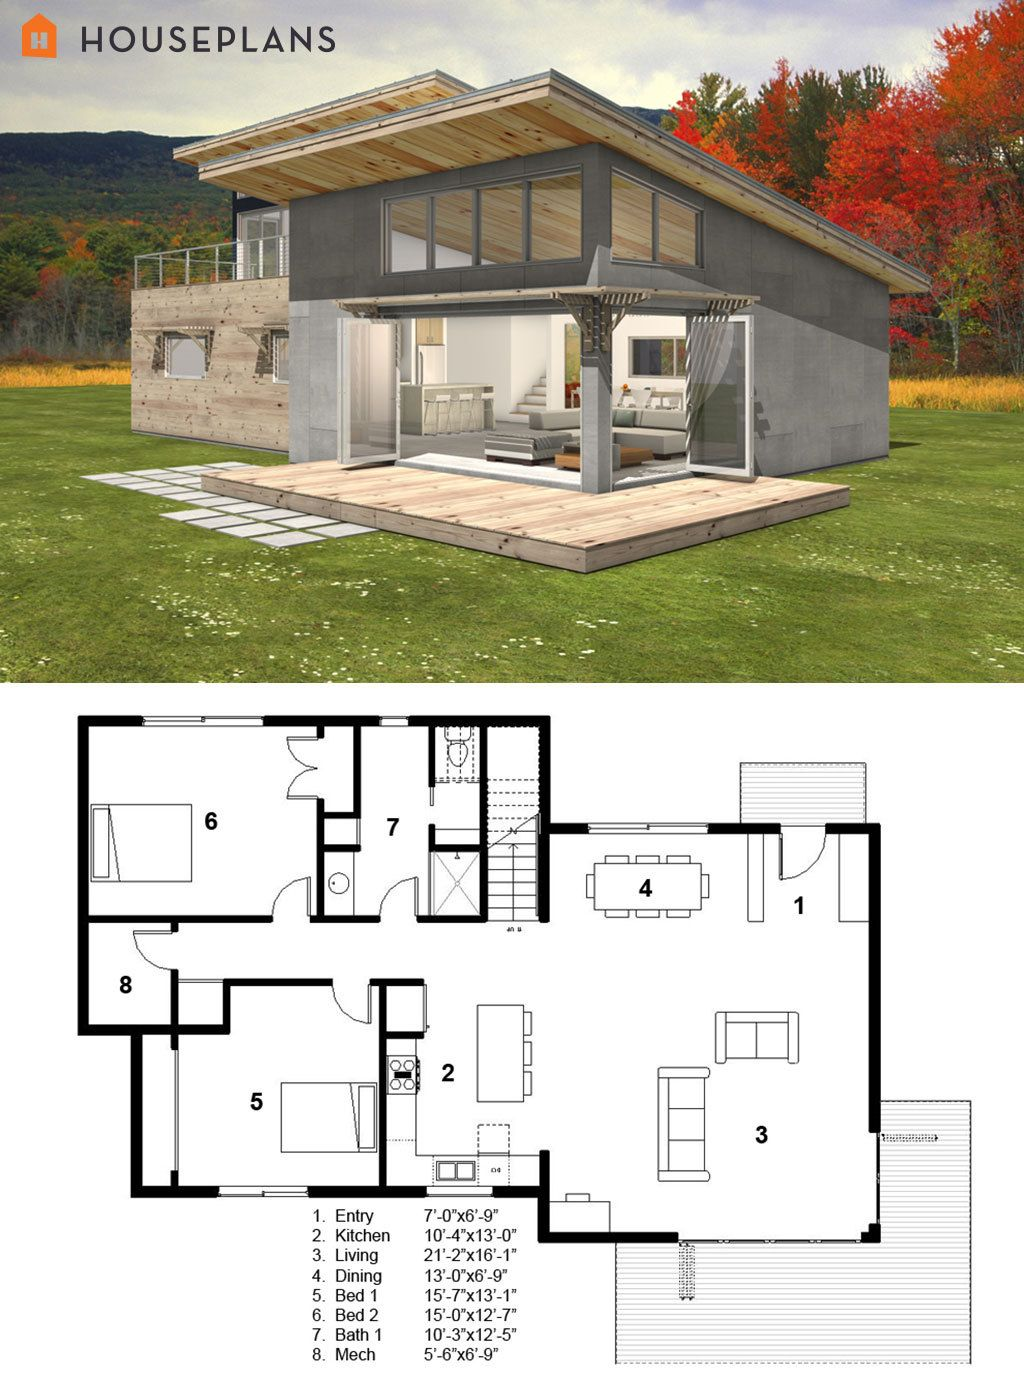 Modern style house plan 3 beds baths 2115 sq ft for Modern house designs 2015